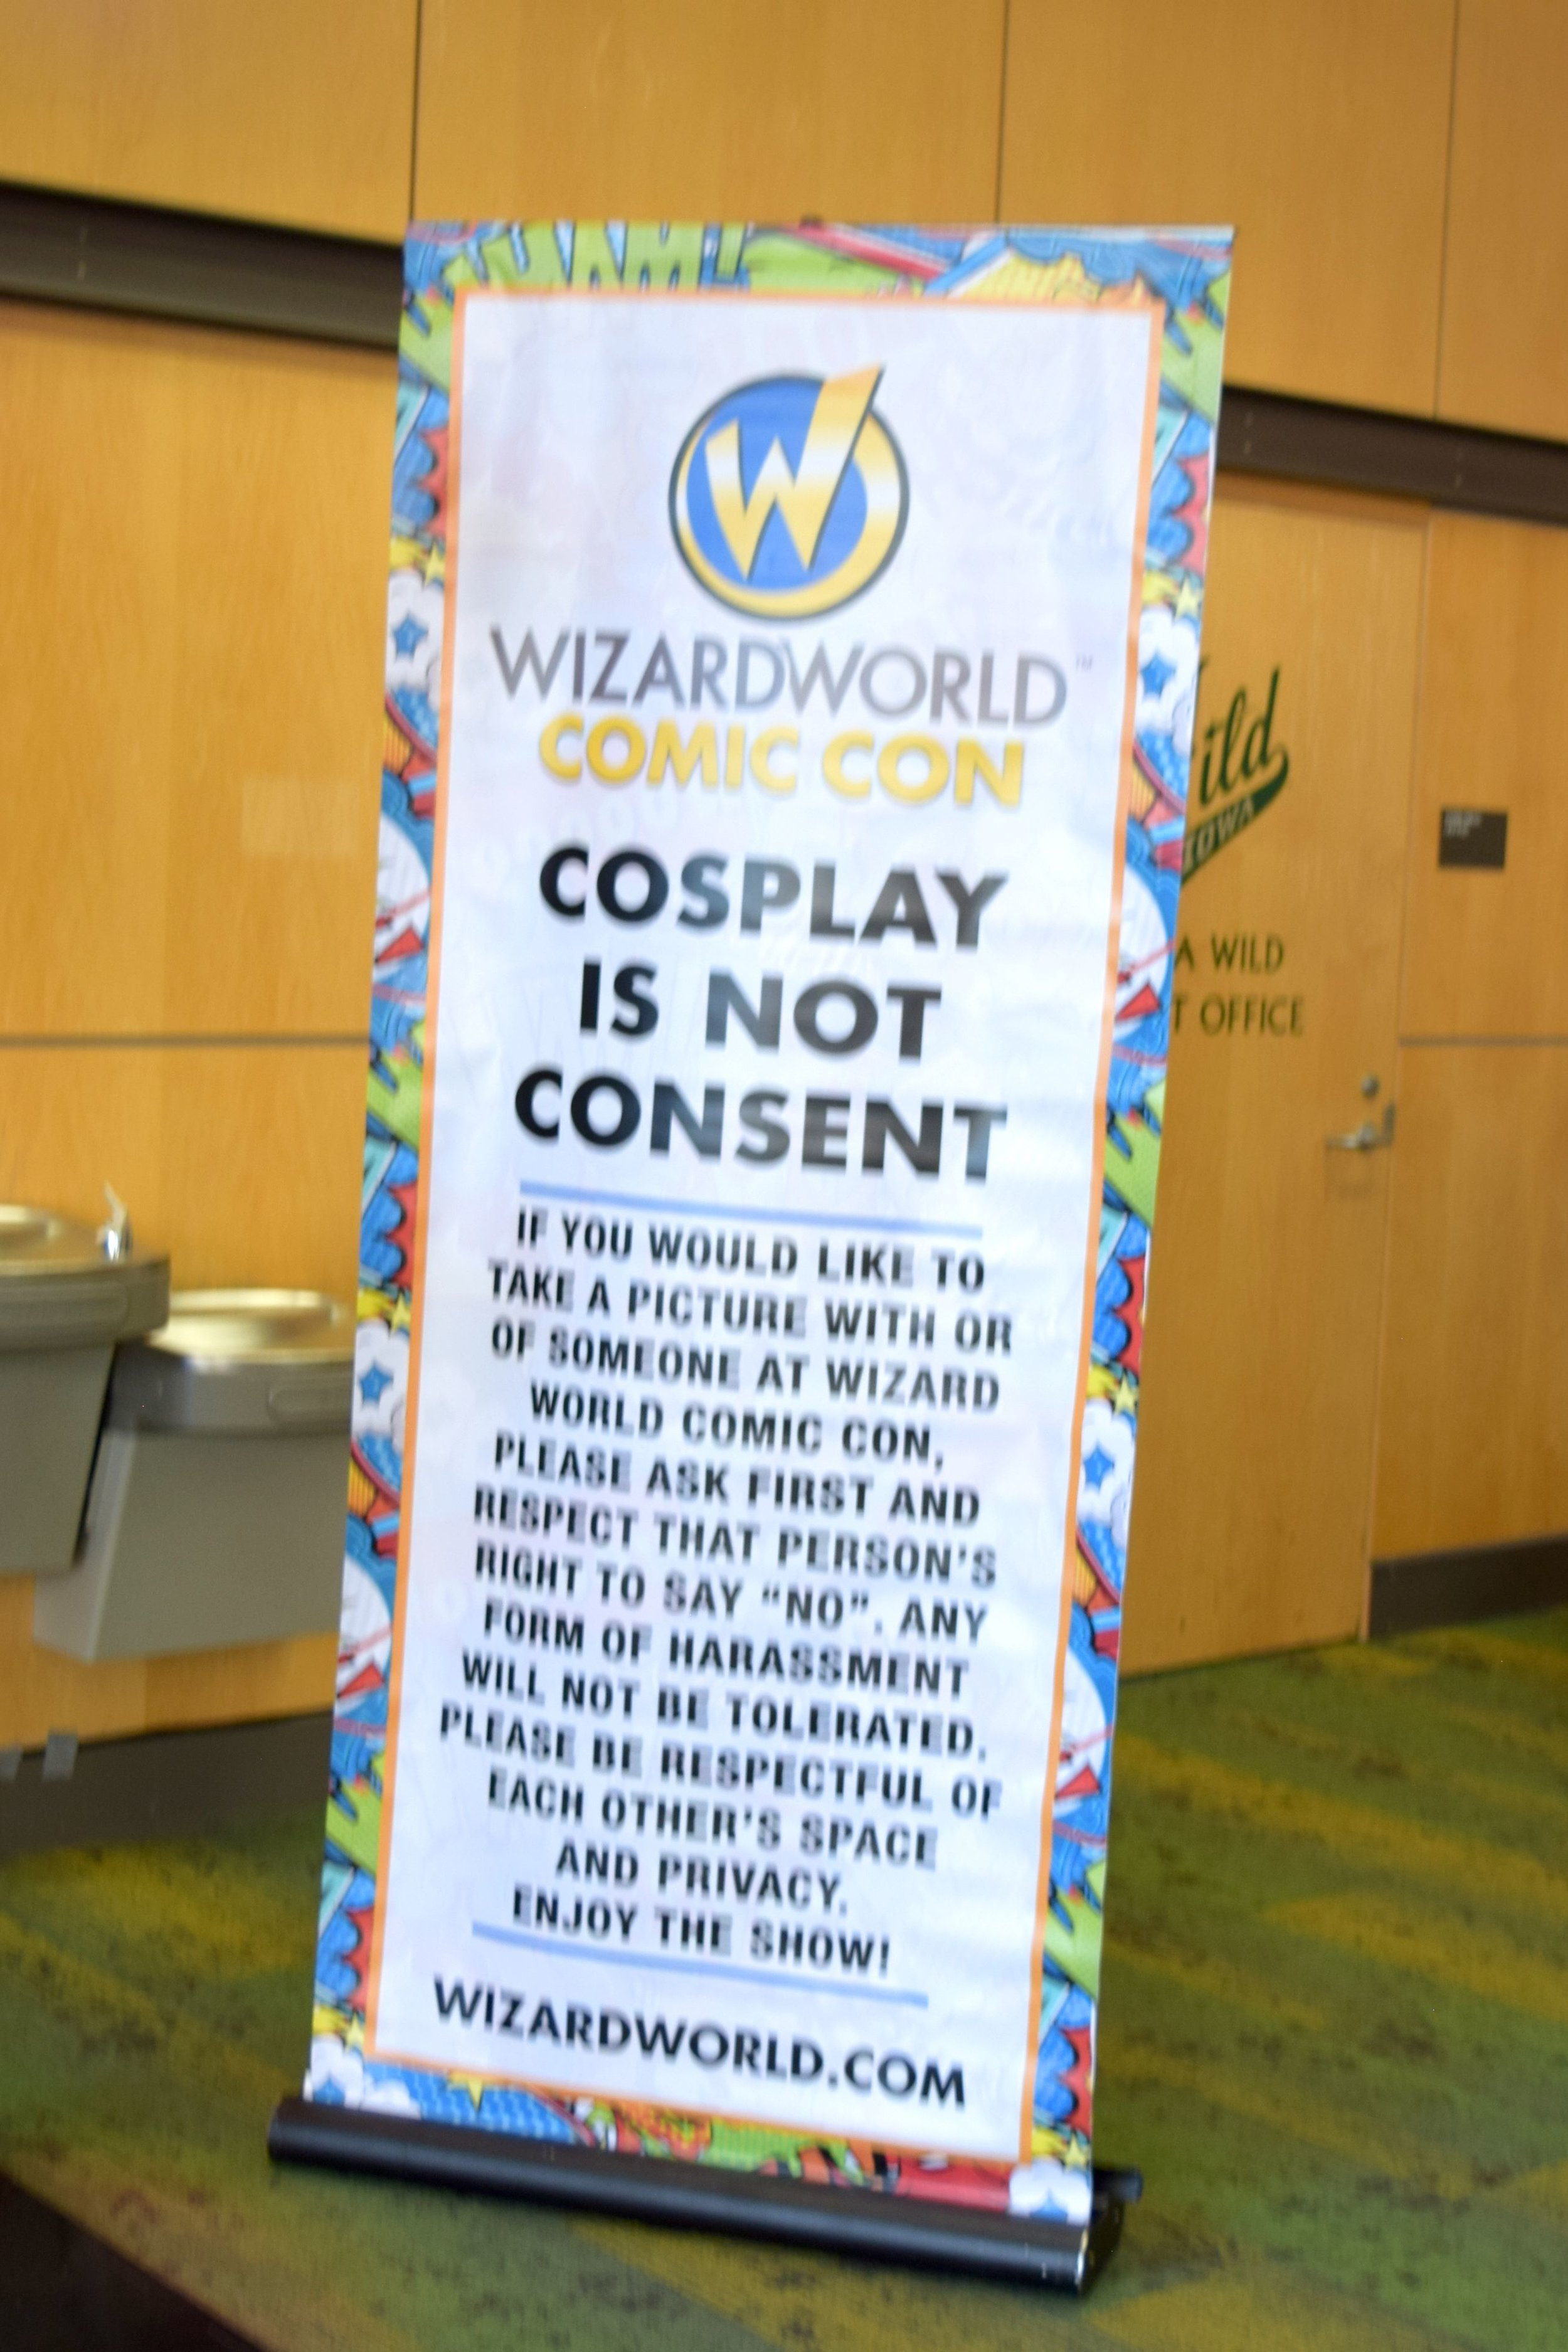 Remember, Cosplay is  Not  Consent.